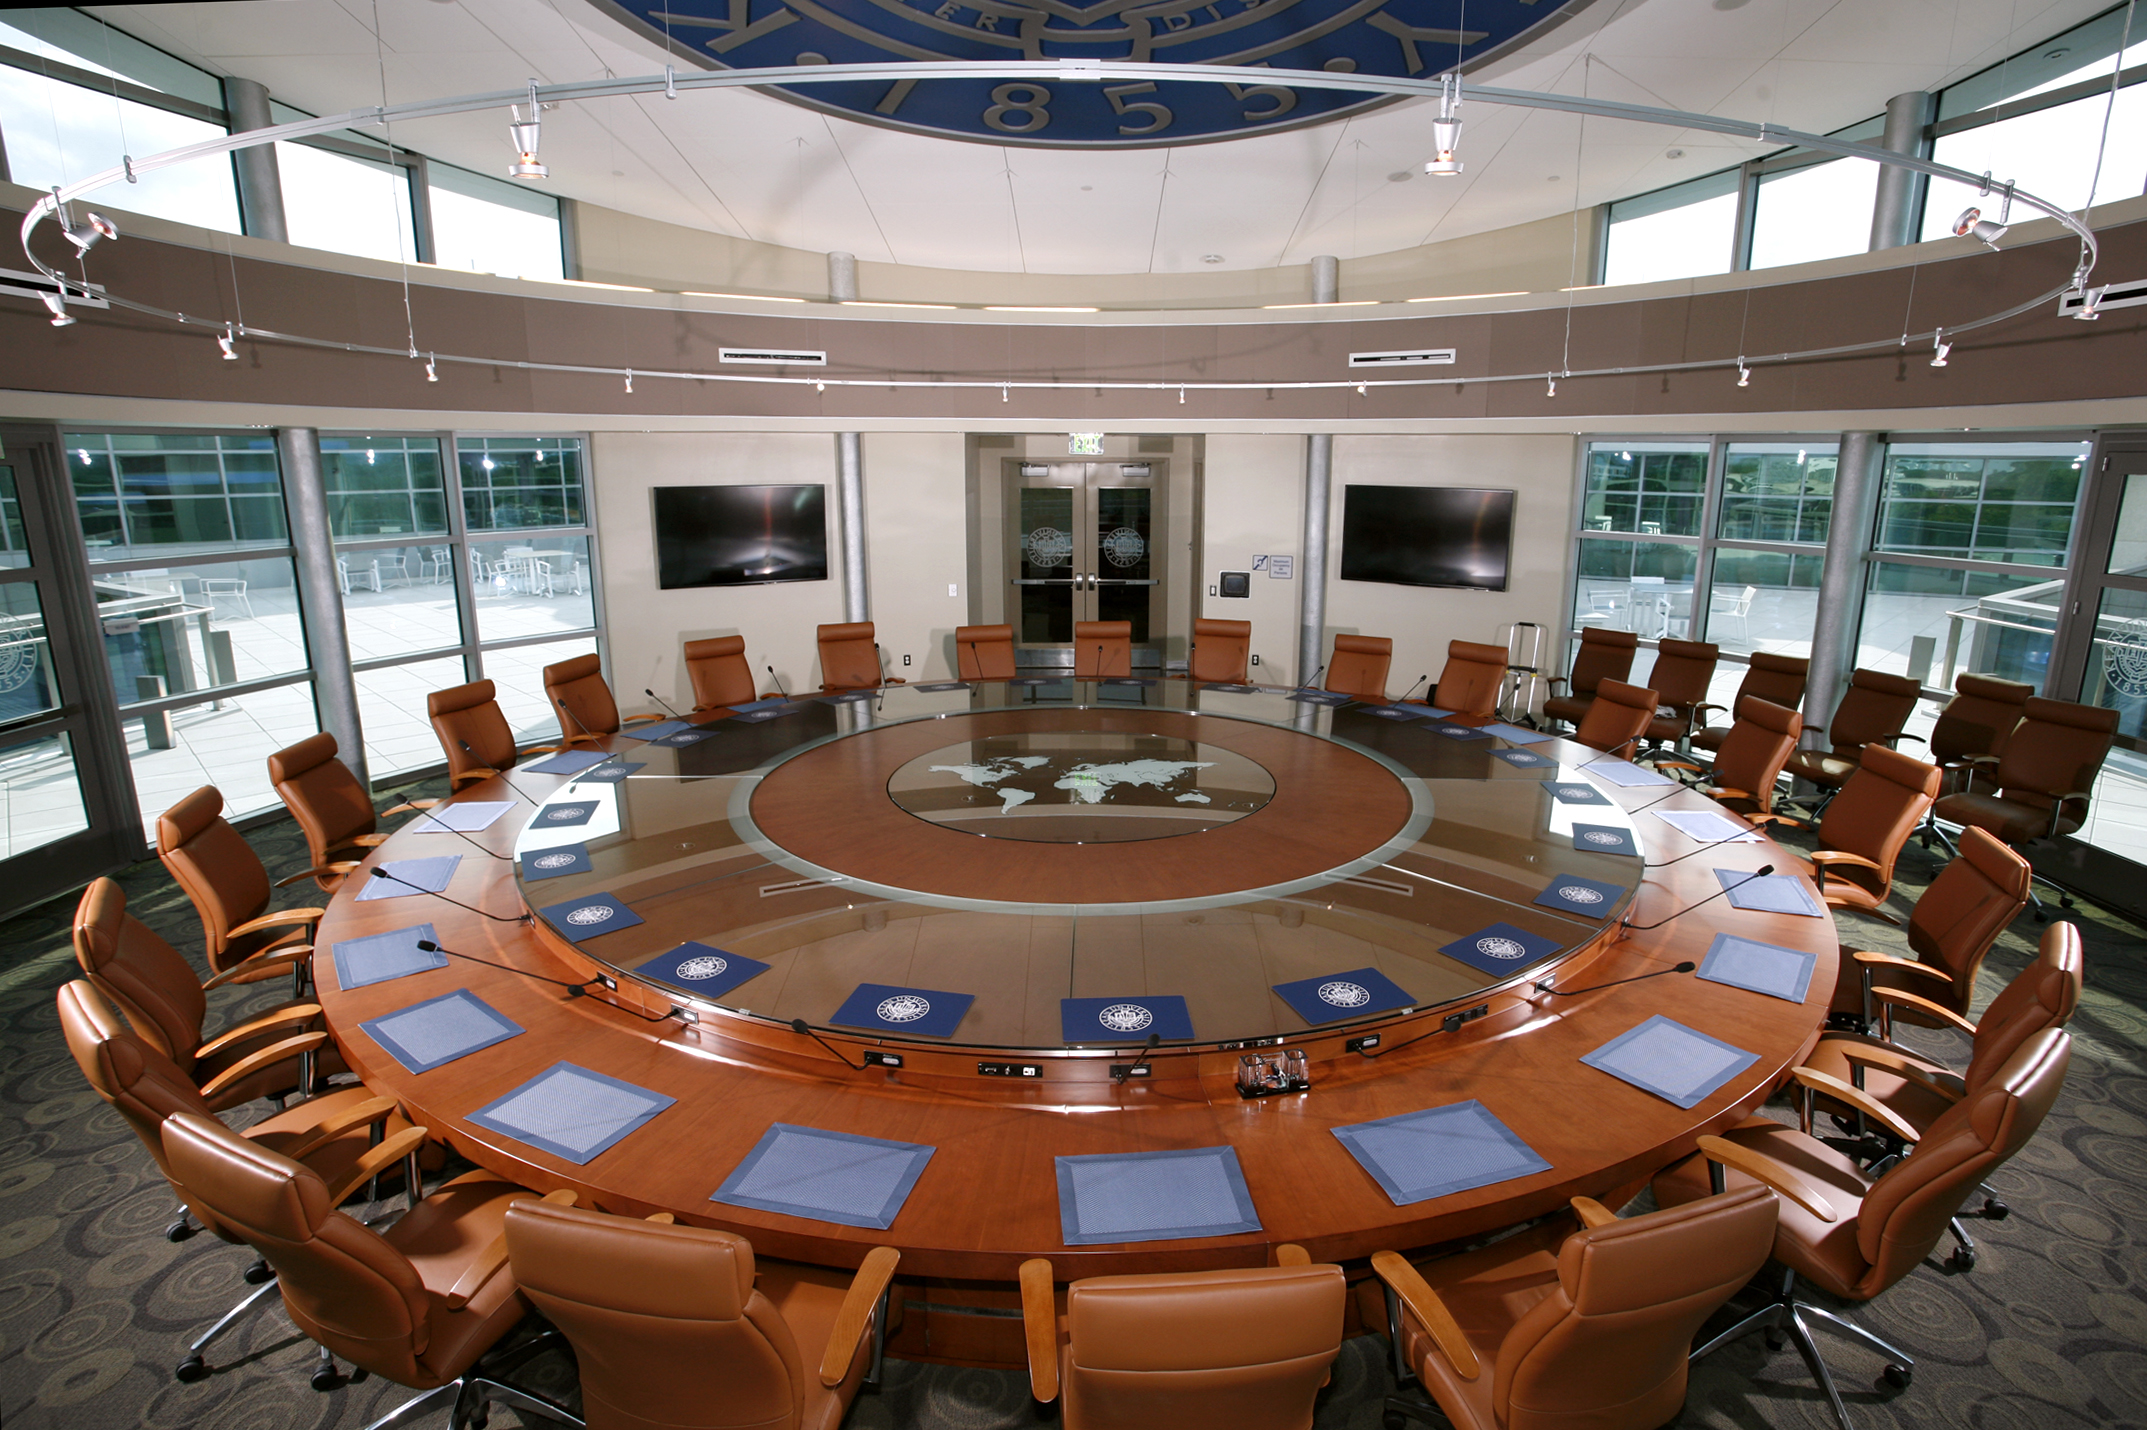 Kean U Defends Purchase Of Conference Room Table - Granite conference table for sale